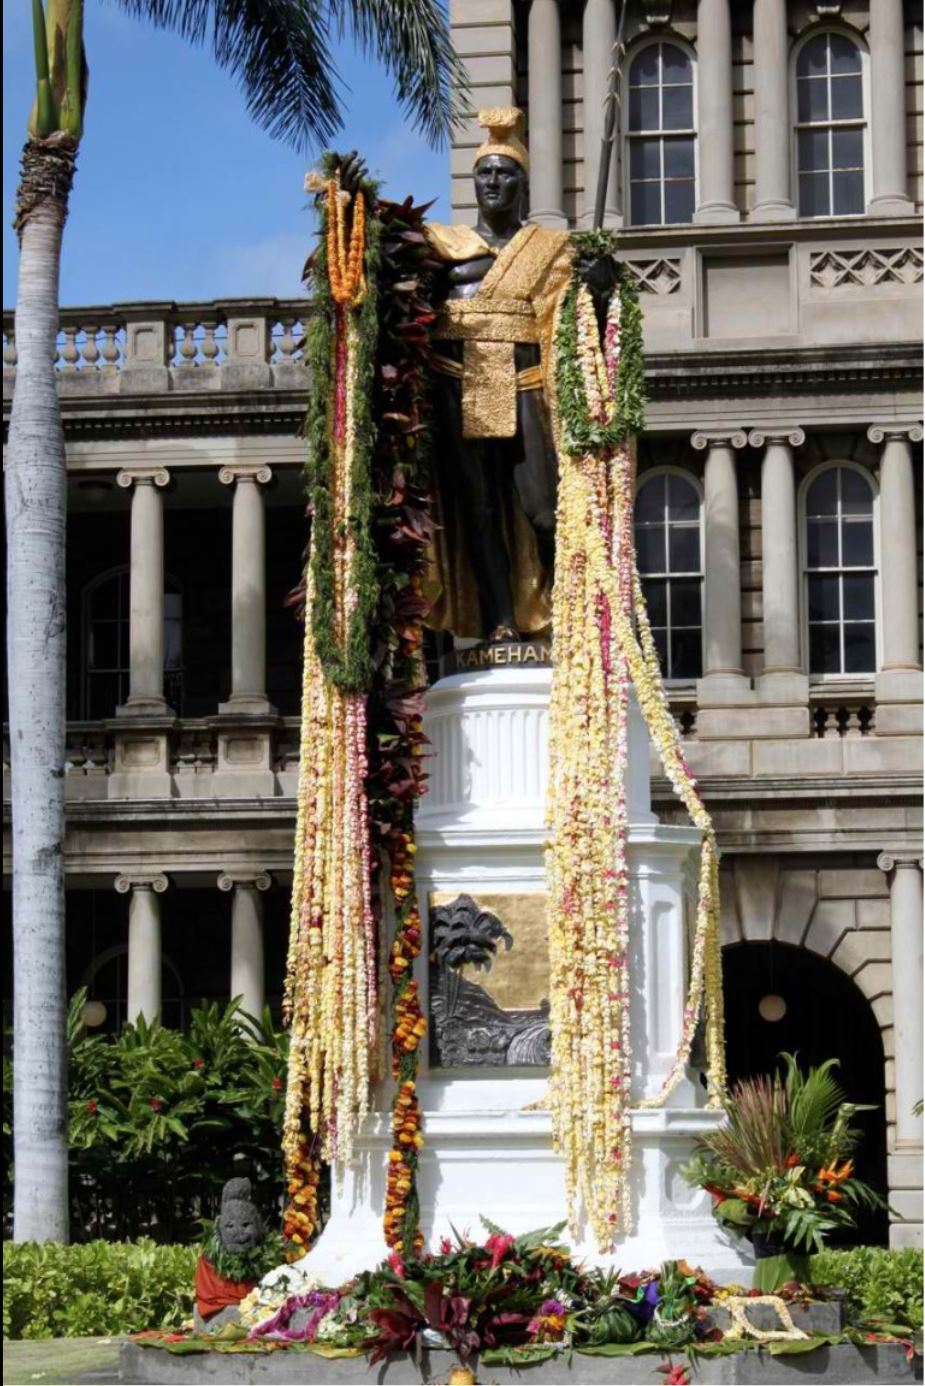 A statue of King Kamehameha I in front of the legislative buildings of Hawaii is draped in flowers every June 11 in commemoration of Kamehameha Day